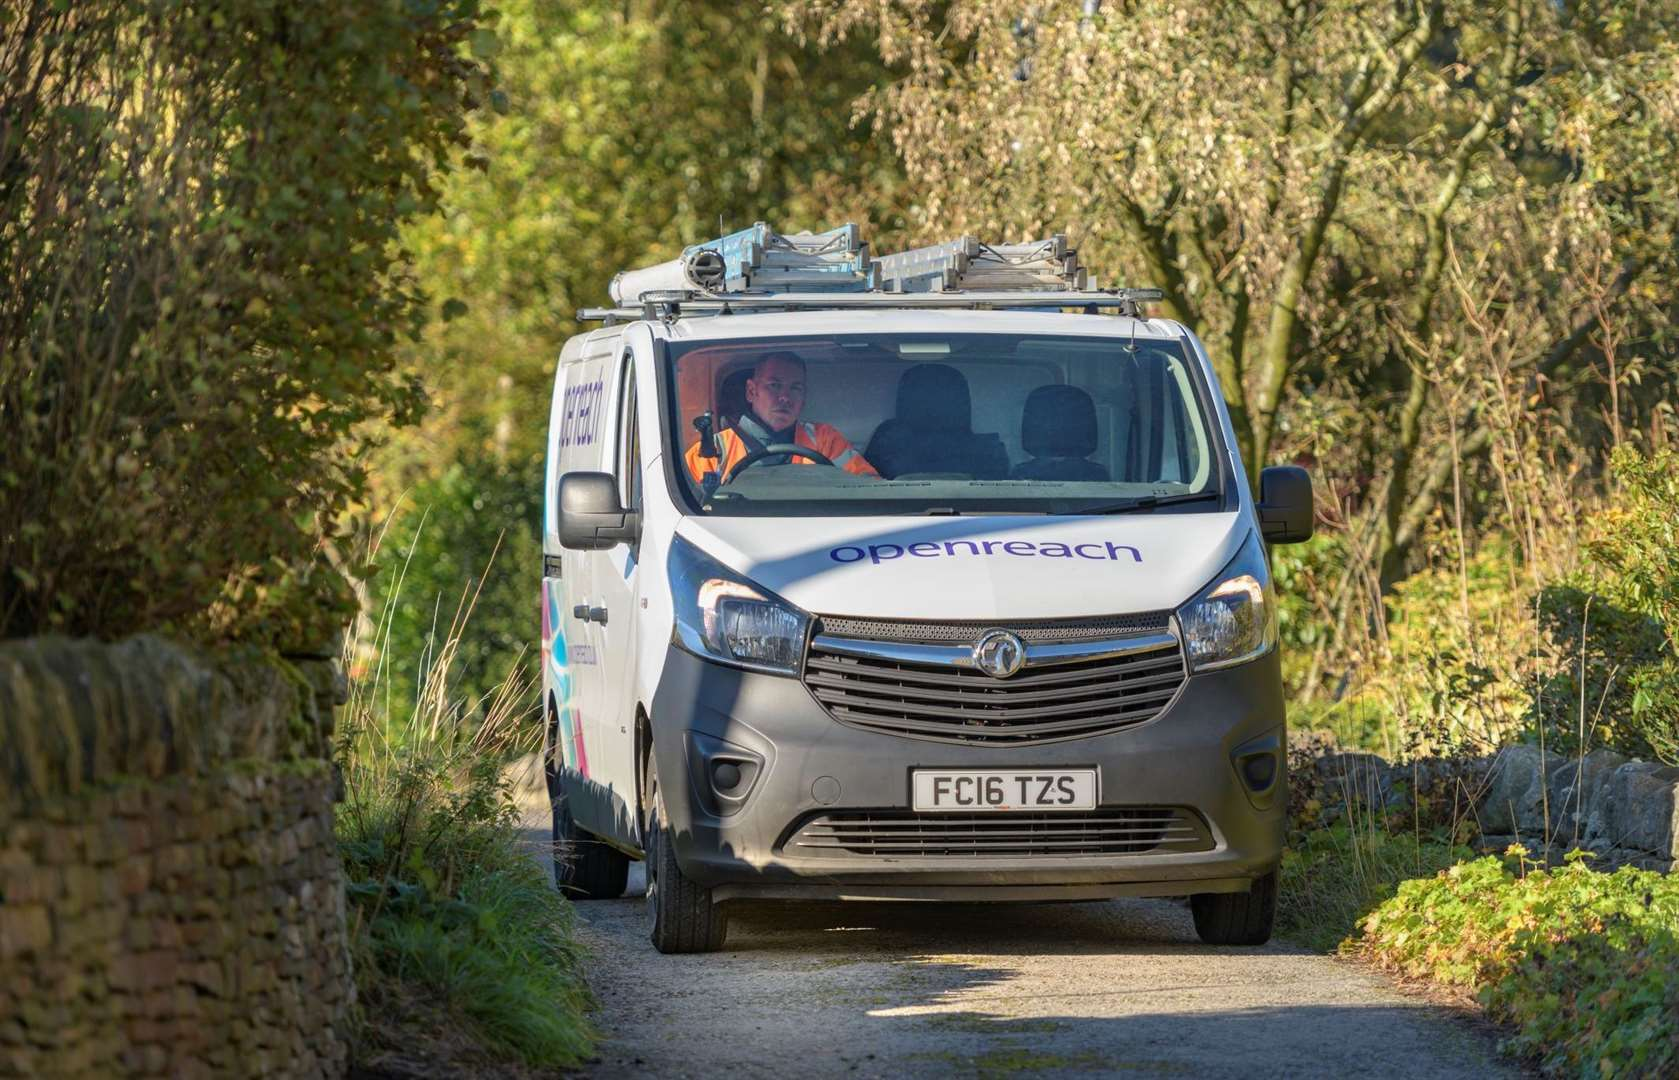 Openreach is delivering superfast broadband to new locations in Kent